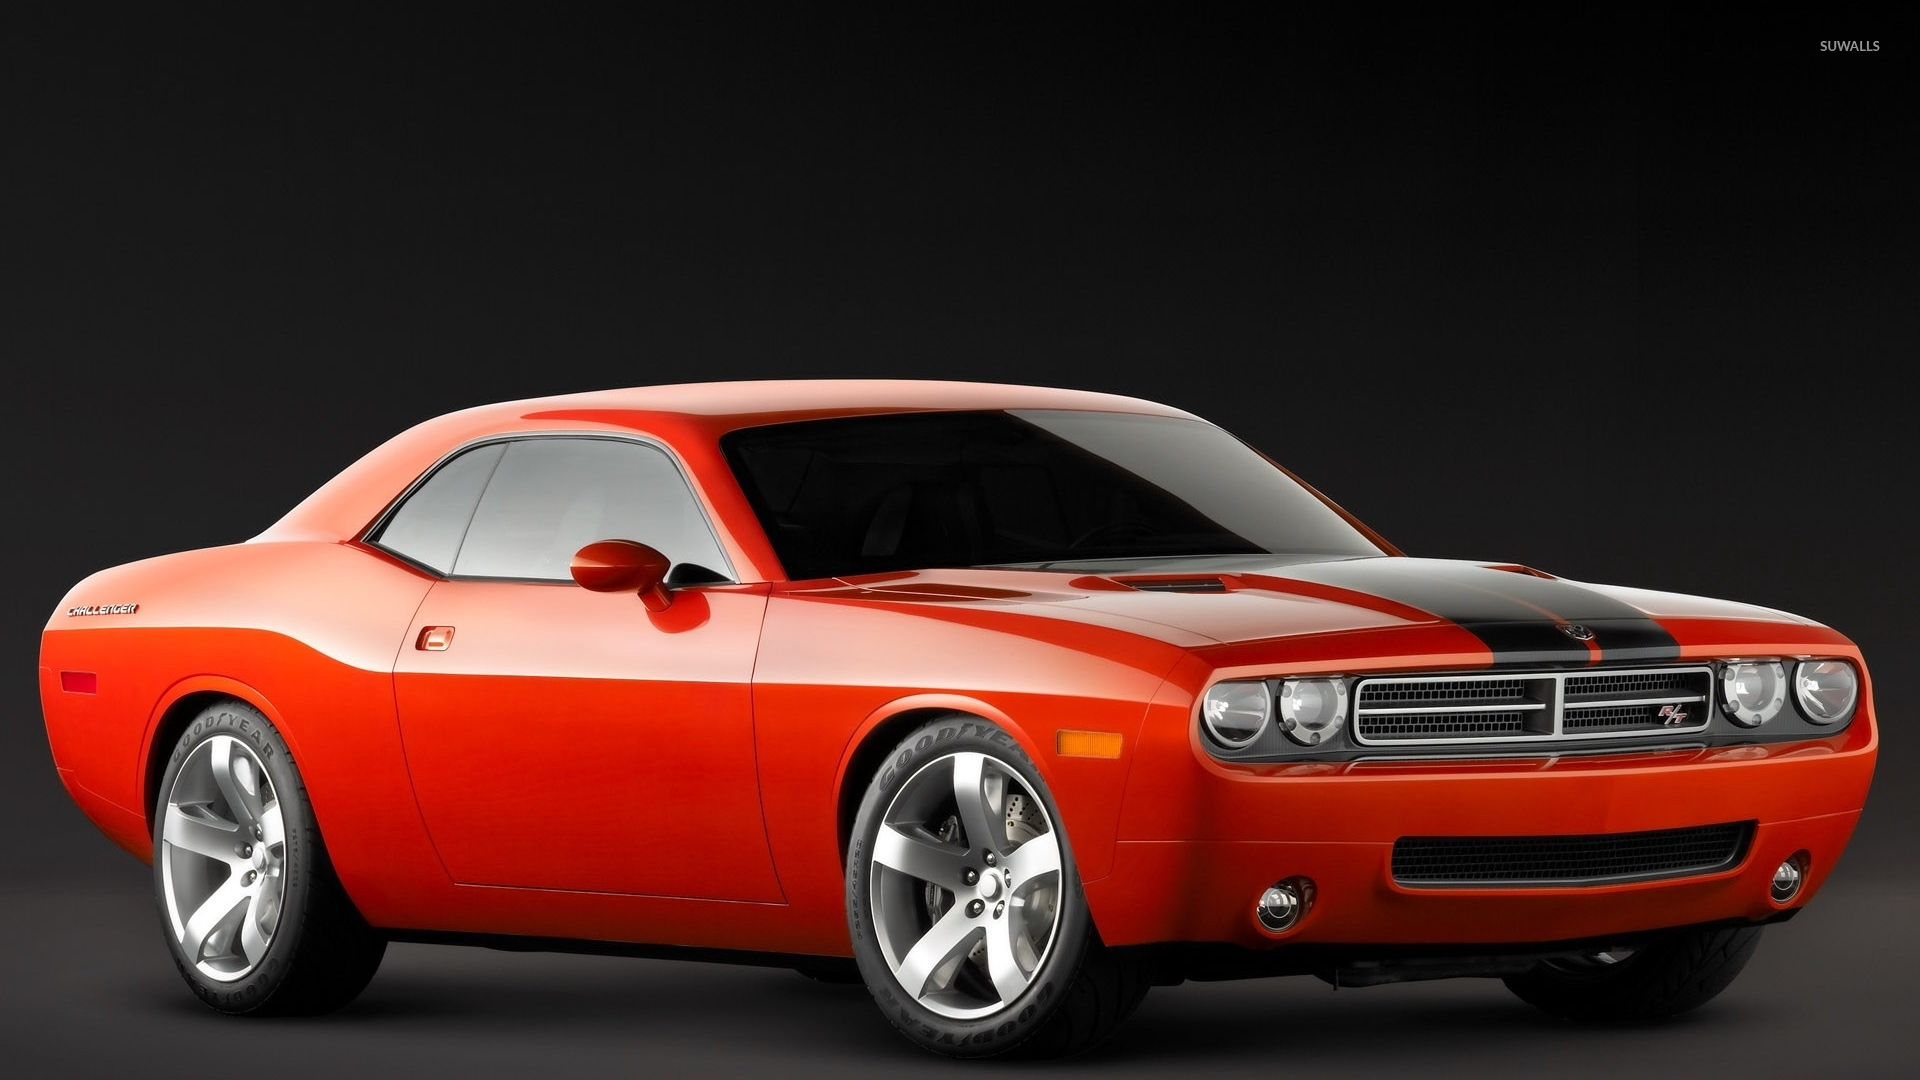 Dodge Challenger Wallpaper Car Wallpapers 5808